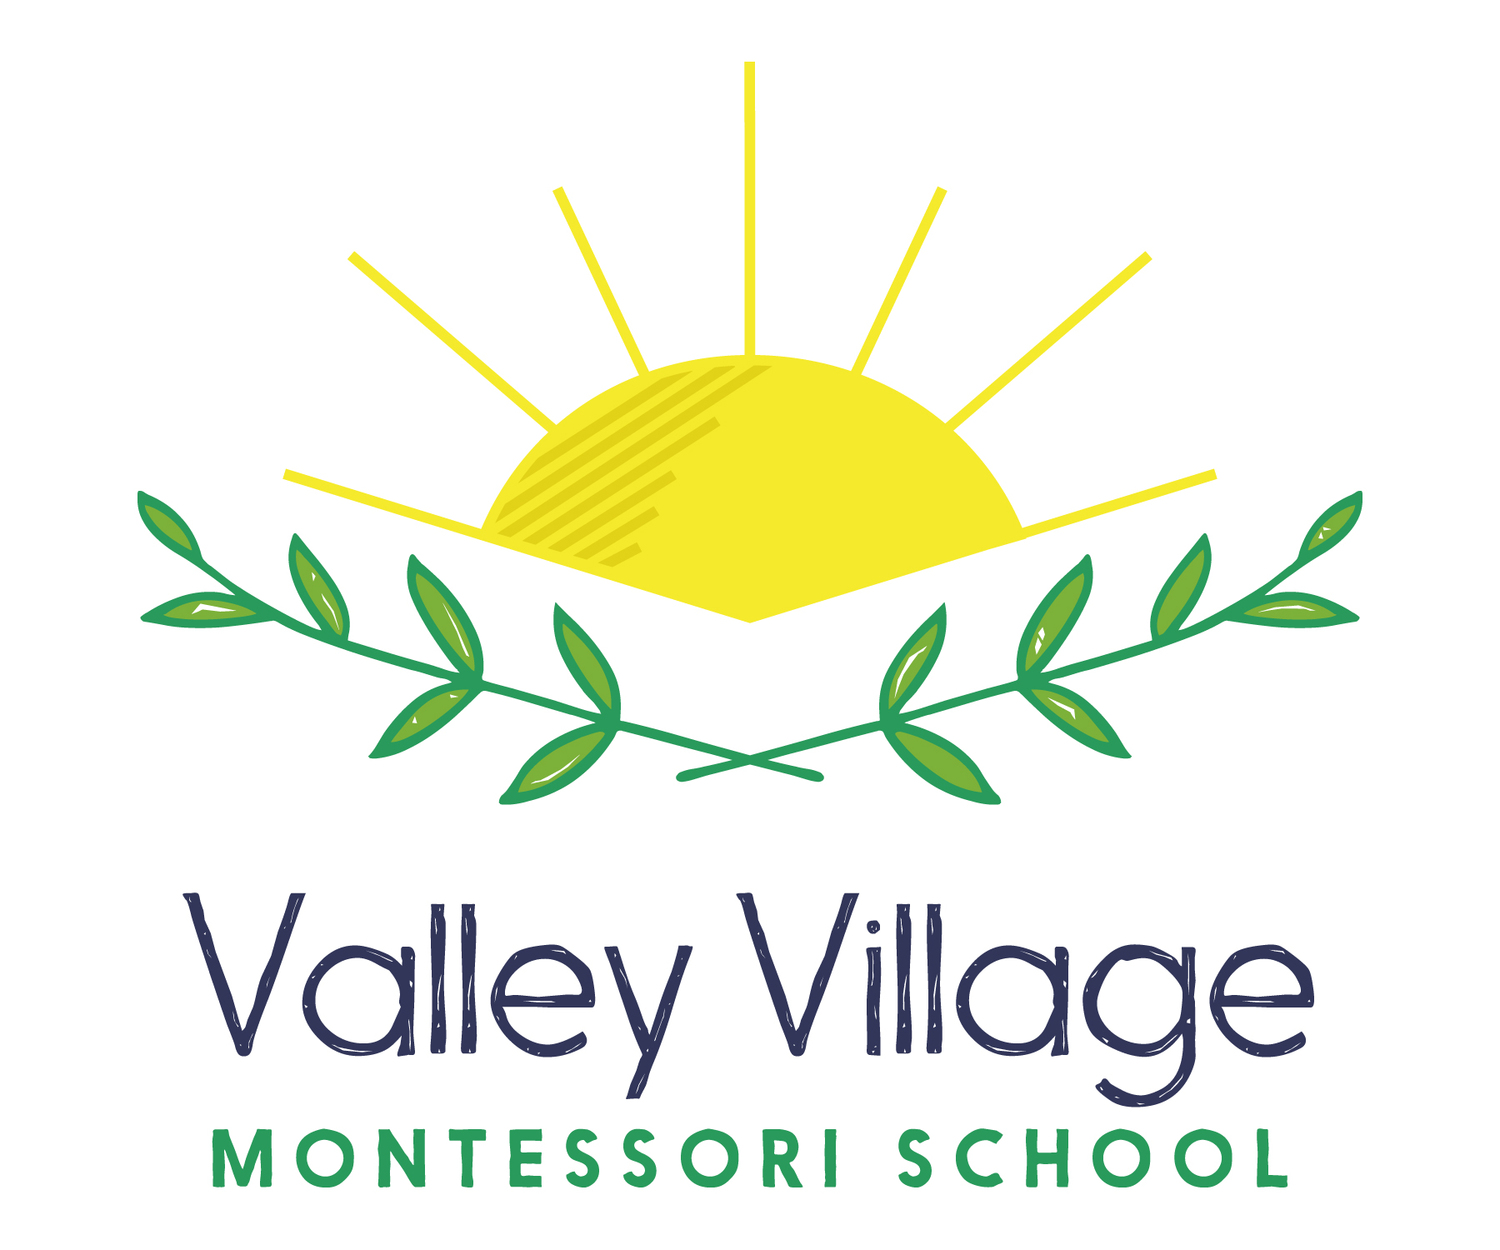 Valley Village Montessori